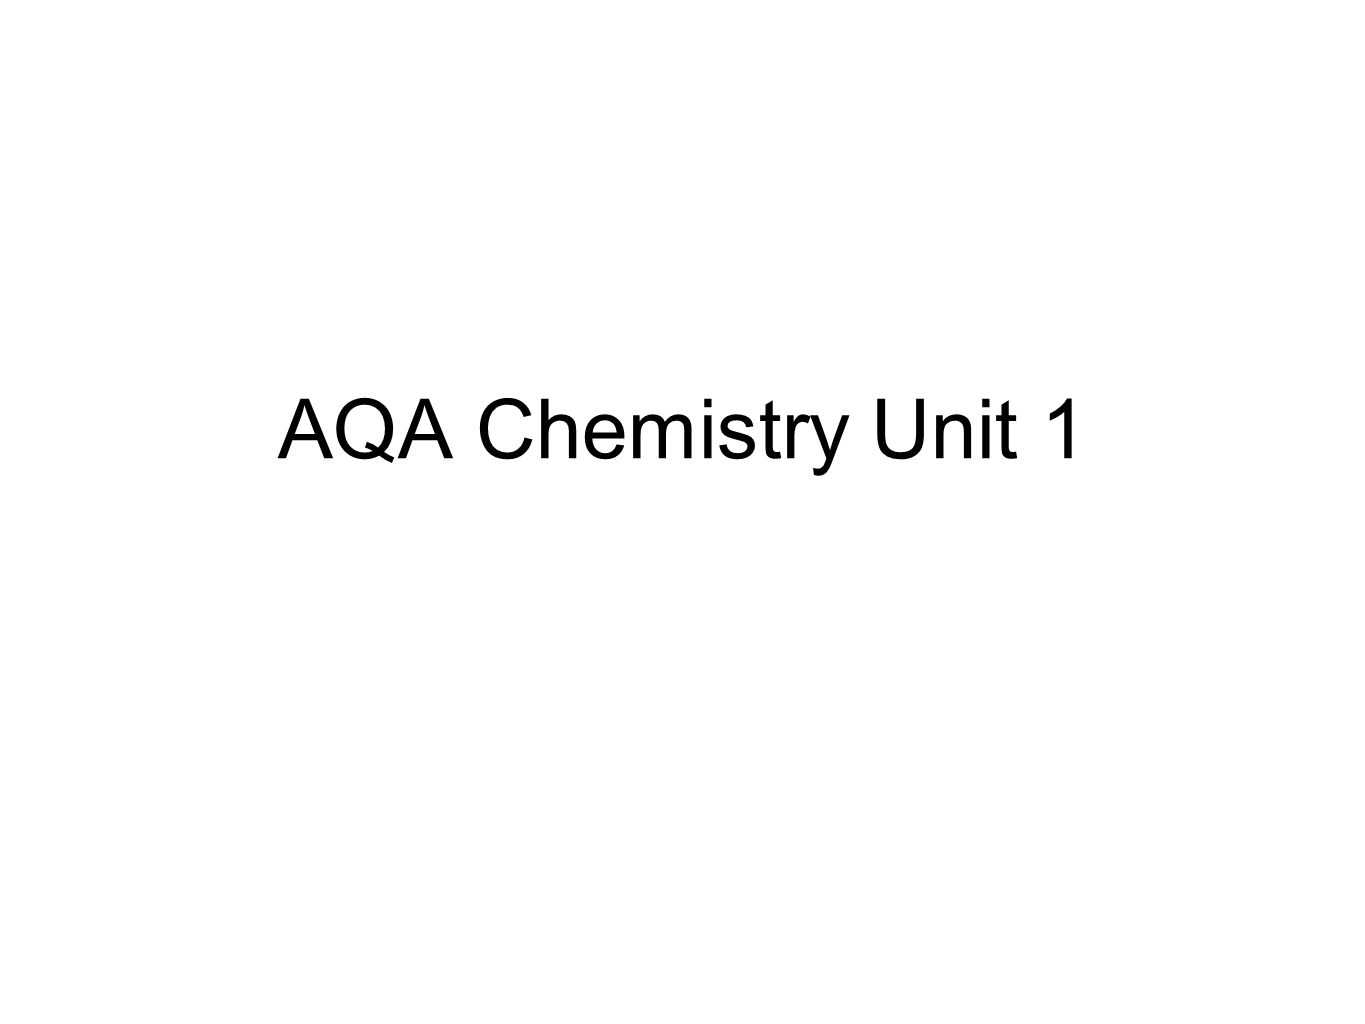 Aqa chemistry unit 1 atoms all substances are made of atoms an 1 aqa chemistry unit 1 urtaz Images